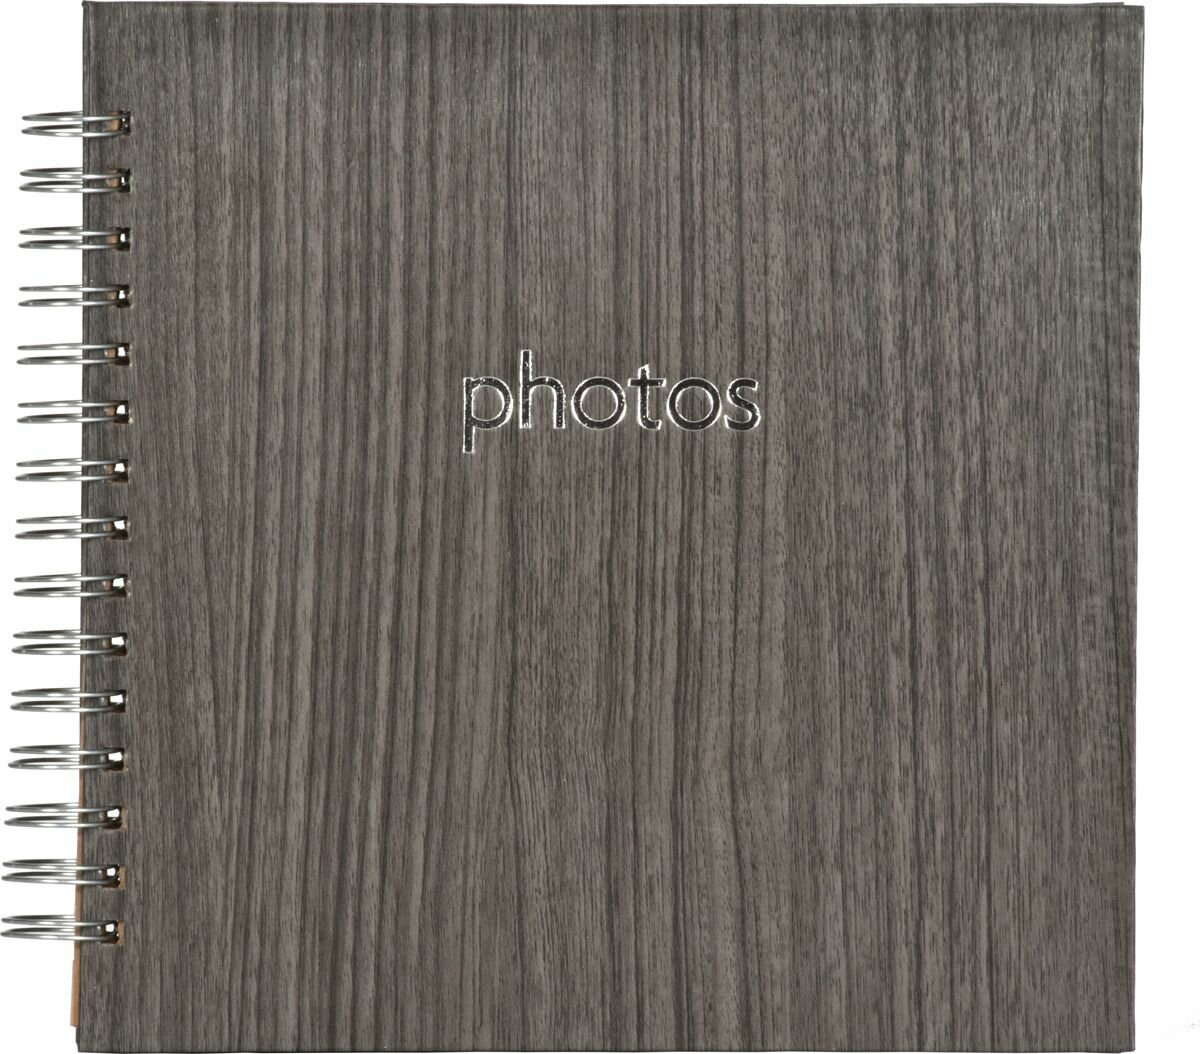 Фотоальбом Innova Poplar Black Oak Scrapbook, 20 листов